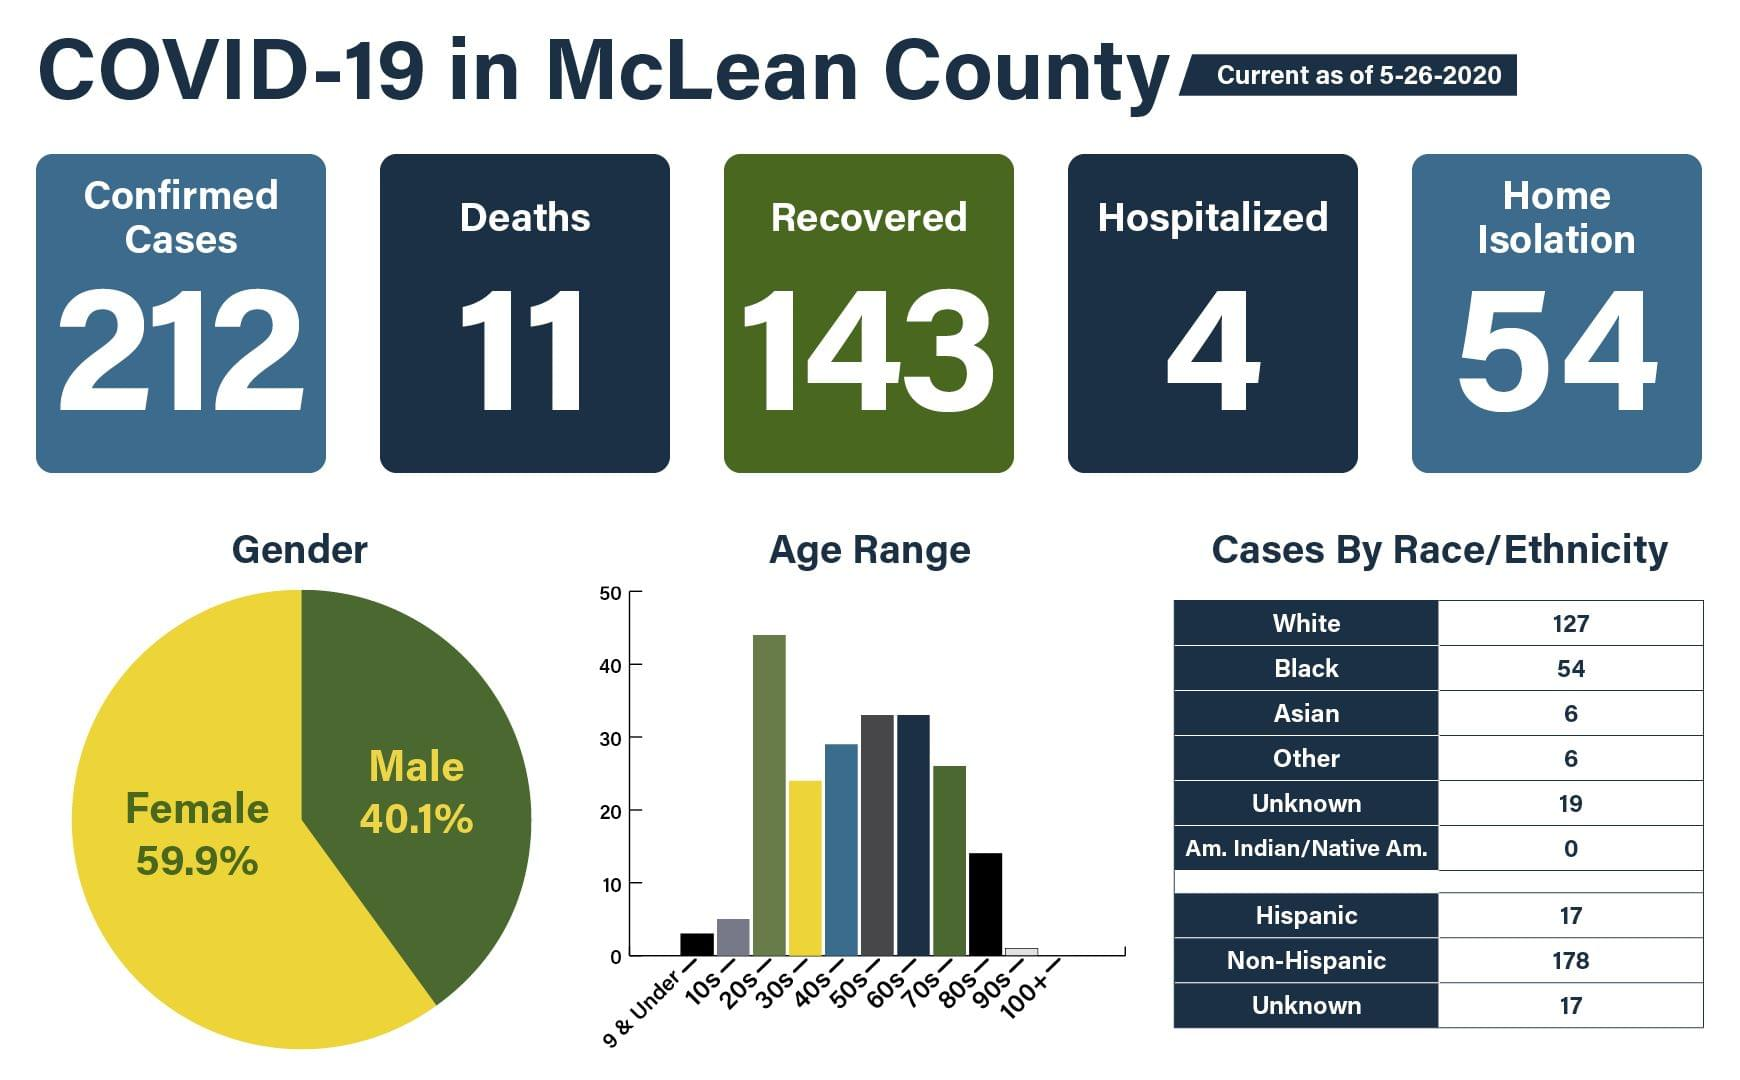 MCHD announces 11th COVID-19 death; countywide total increases to 212